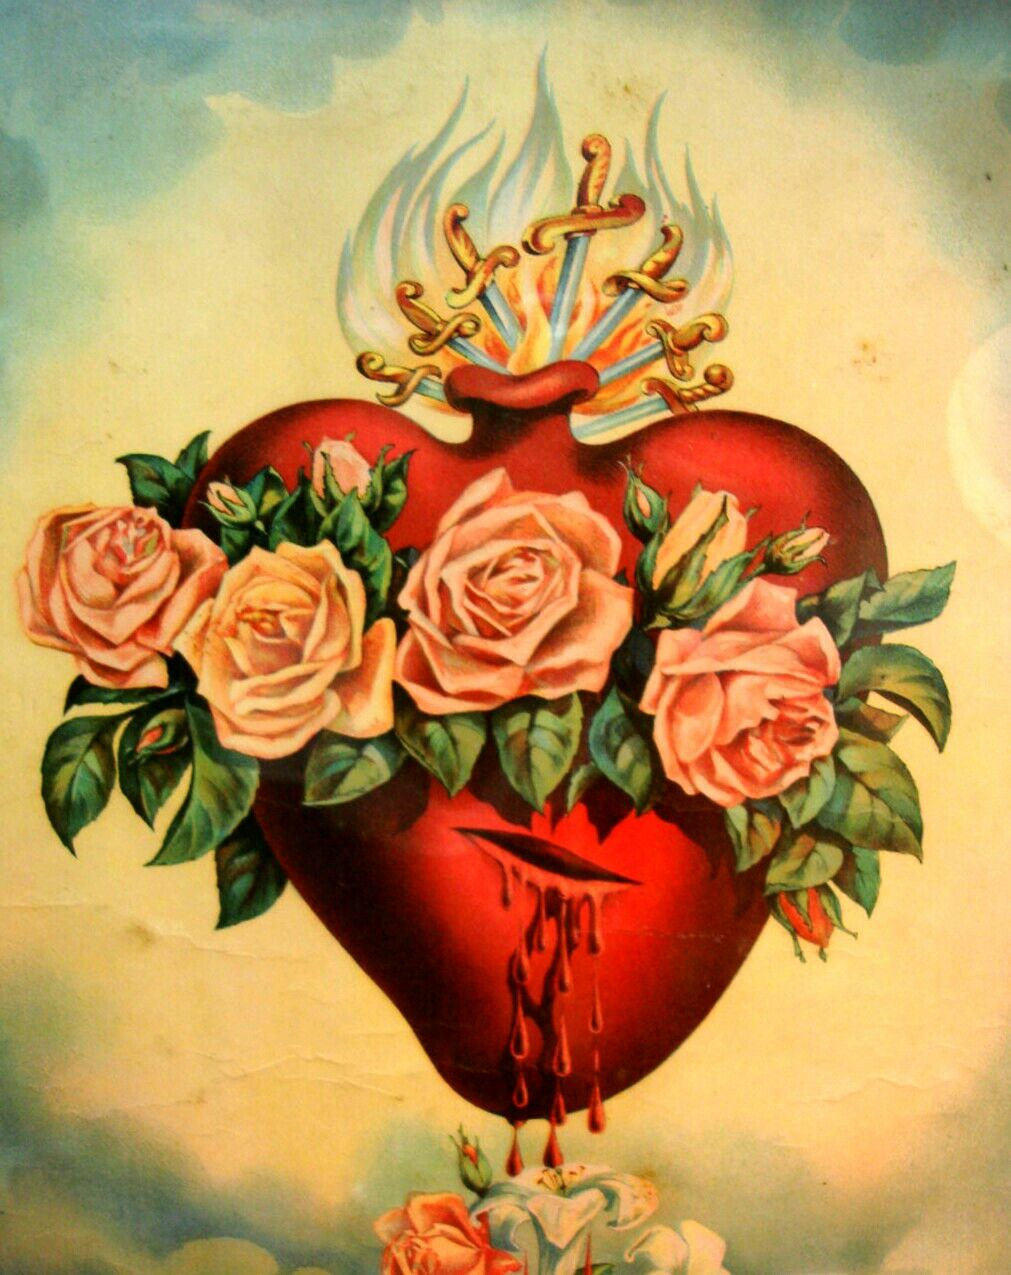 an early 20th century lithograph of the immaculate heart of mary